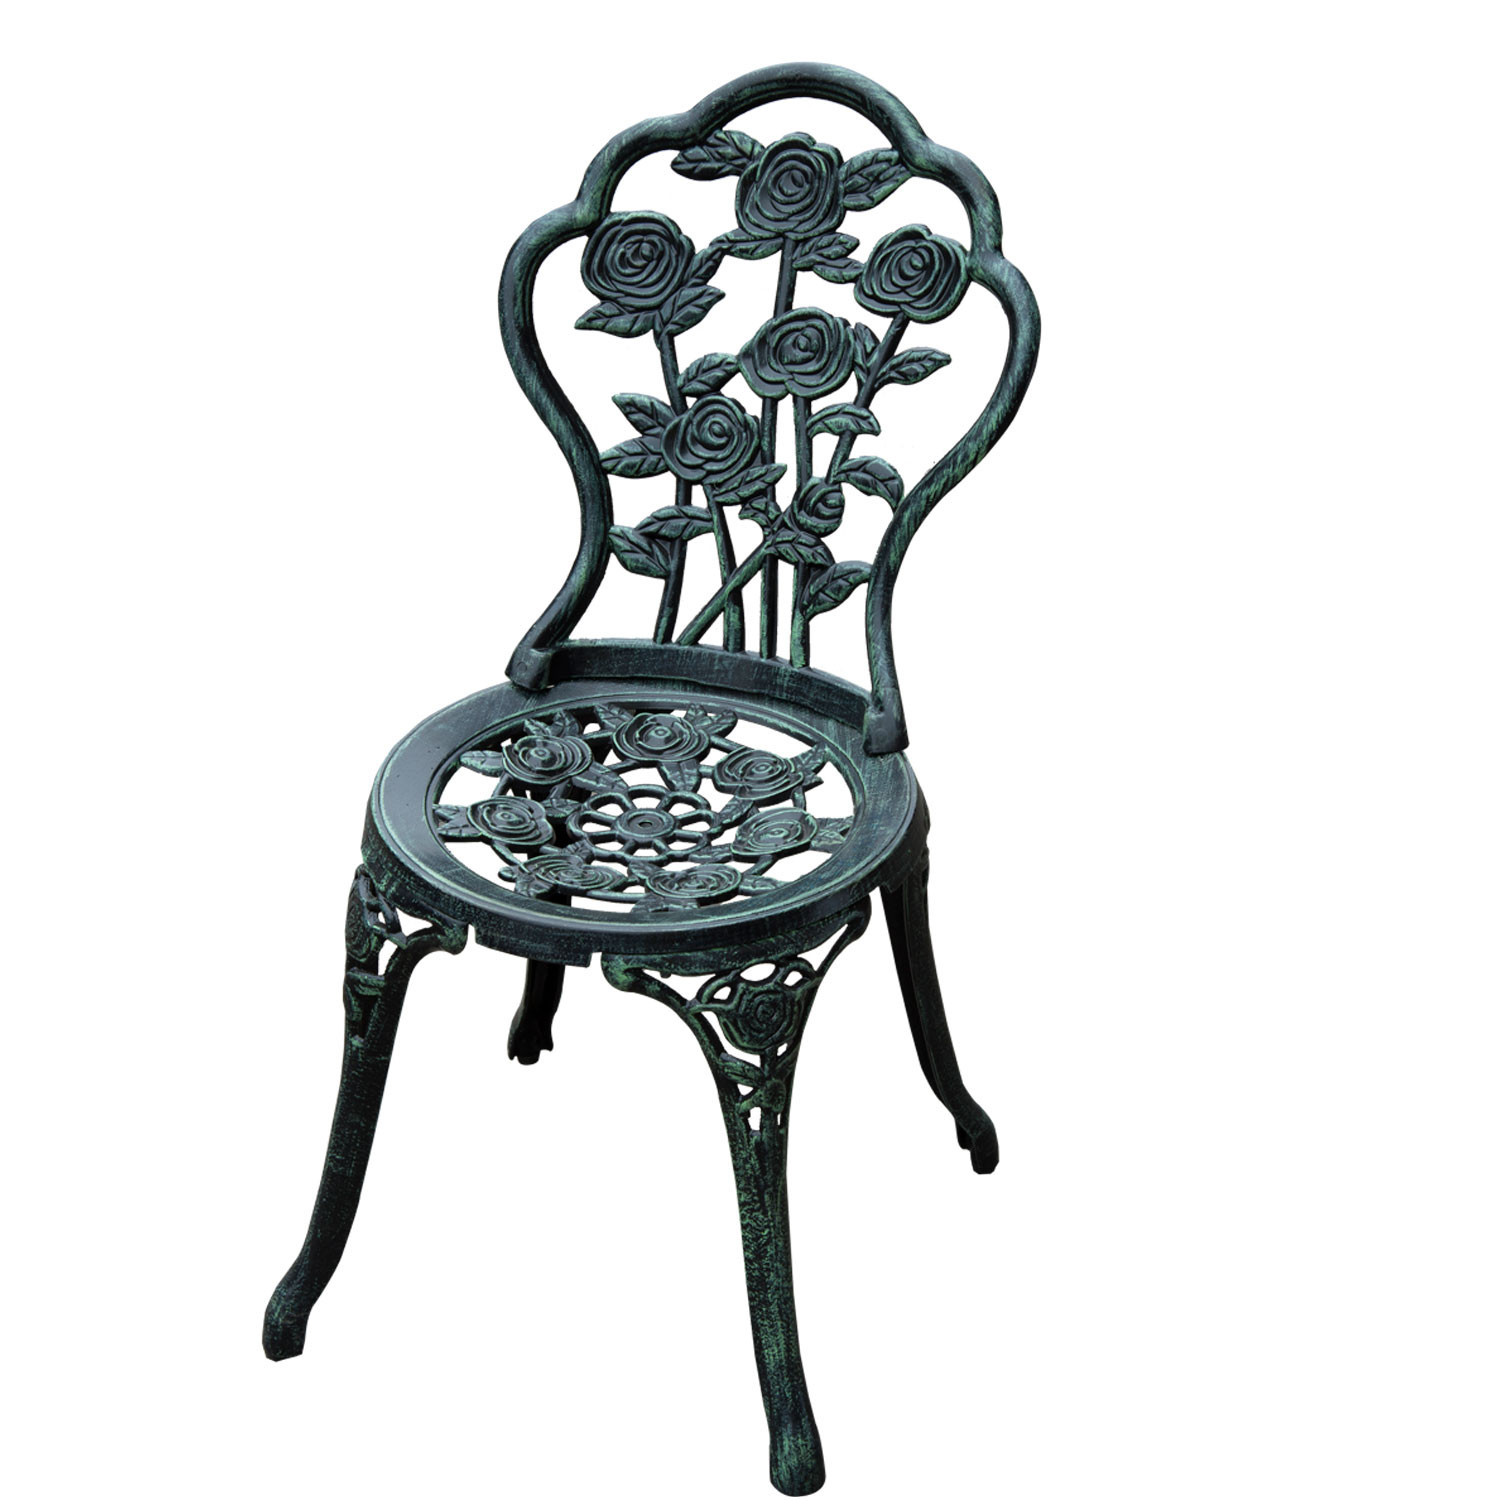 Best ideas about Cast Iron Patio Furniture . Save or Pin Aosom LLC Outsunny 3 Piece Outdoor Cast Iron Patio Now.